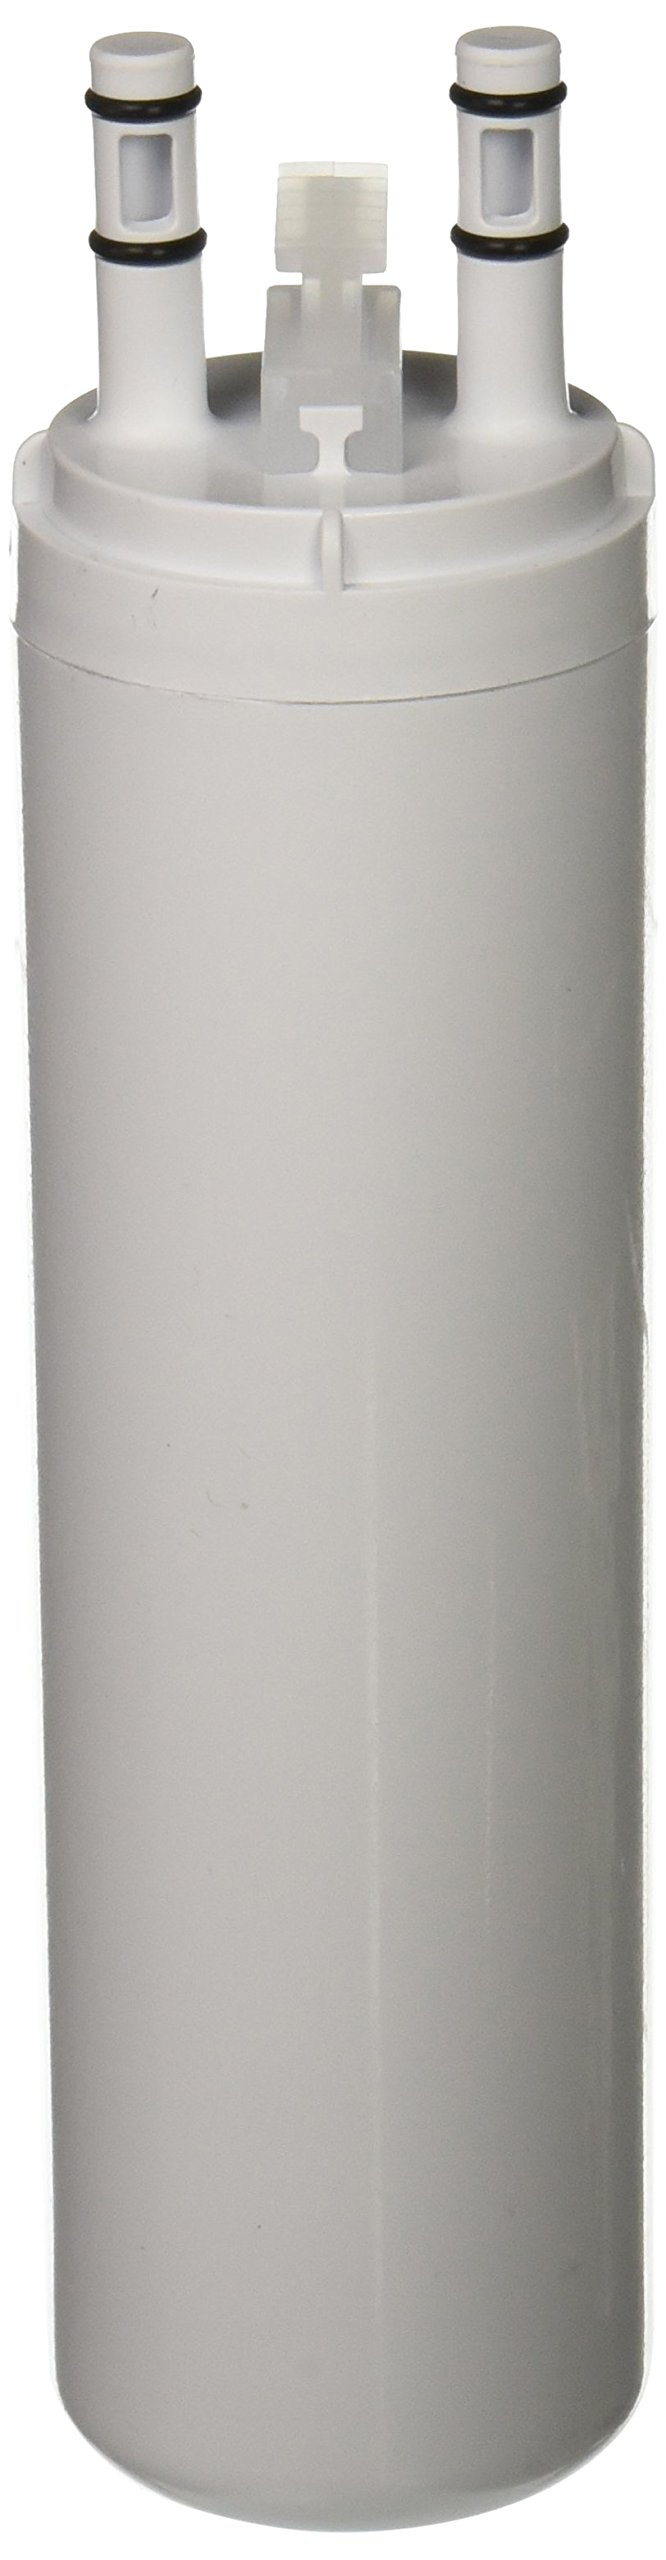 Frigidaire PureSource Ultra Refrigerator Water Filter (ULTRAWF), (Pack of 3)